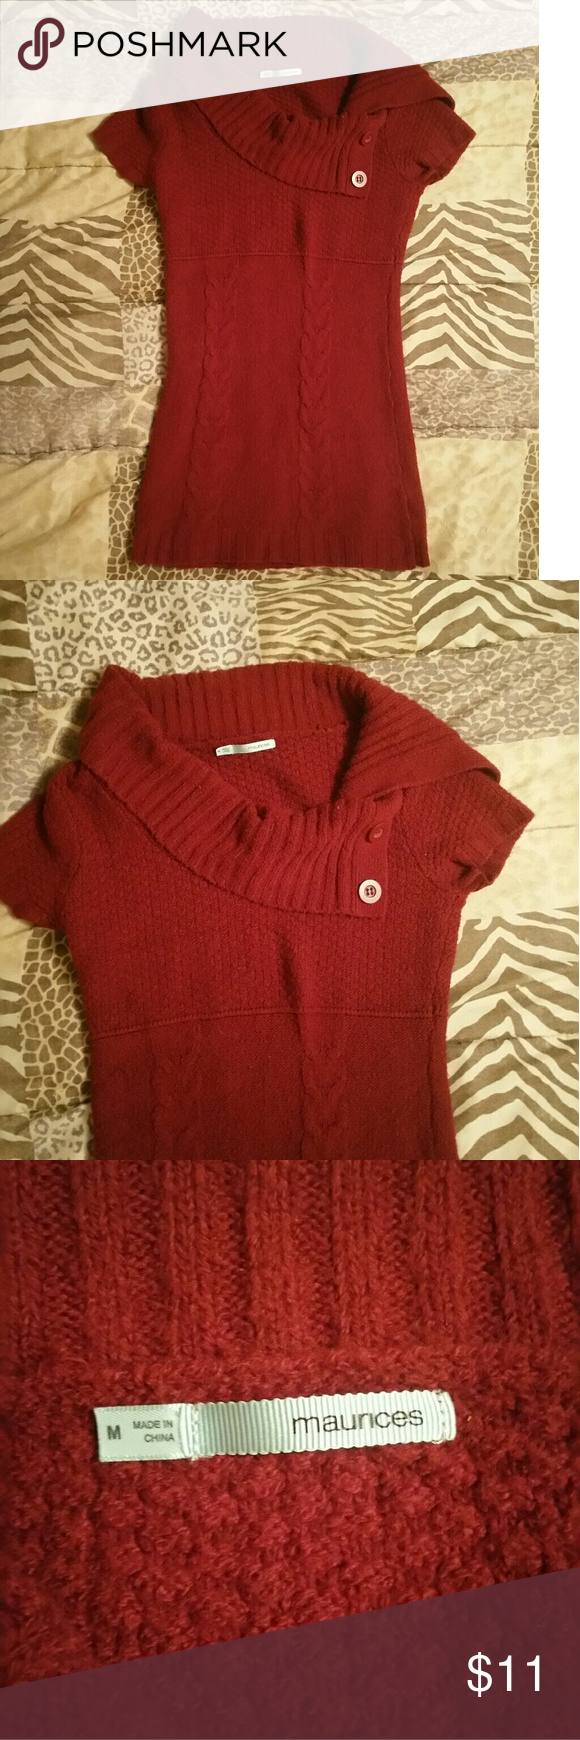 9a17c541696 Sweater dress Adorable sweater dress Red in color Short sleeve with draping  top And buttons on side Brand is Maurices Size M Maurices Dresses